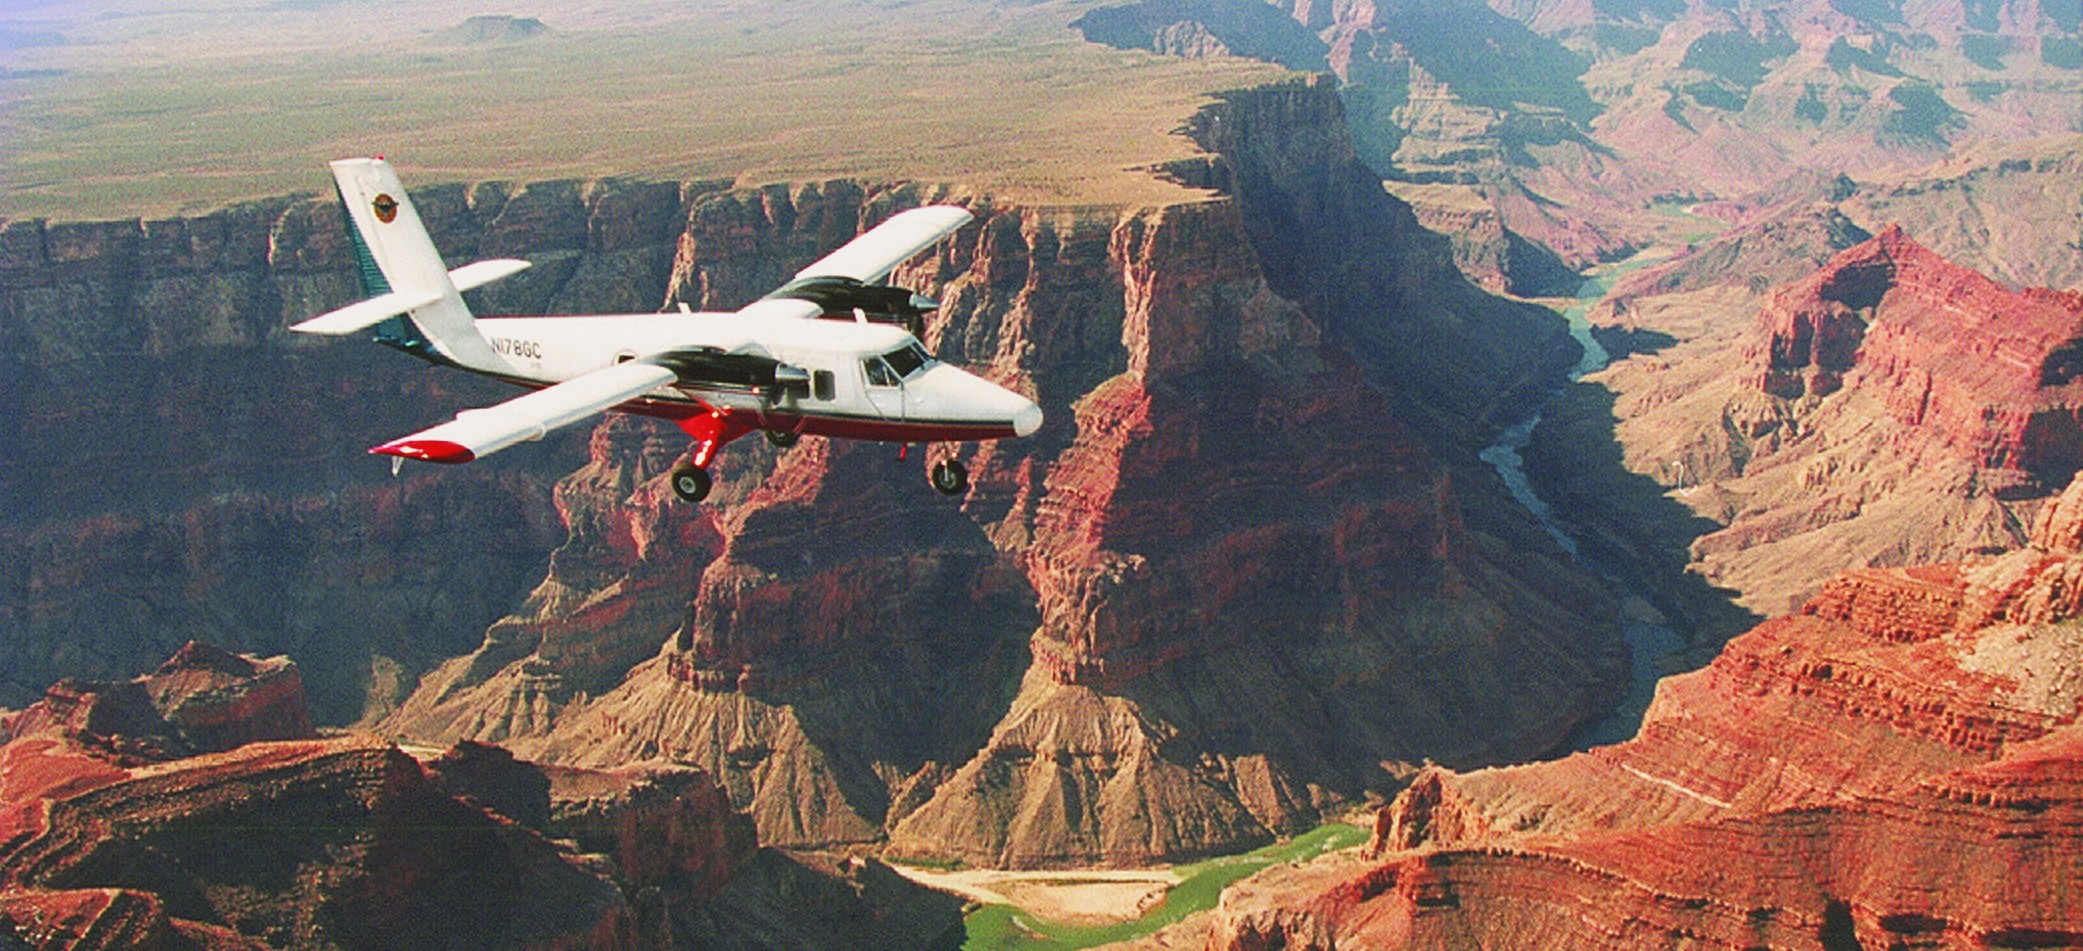 /grand_canyon_plane_tour_things_to_do_in_usa